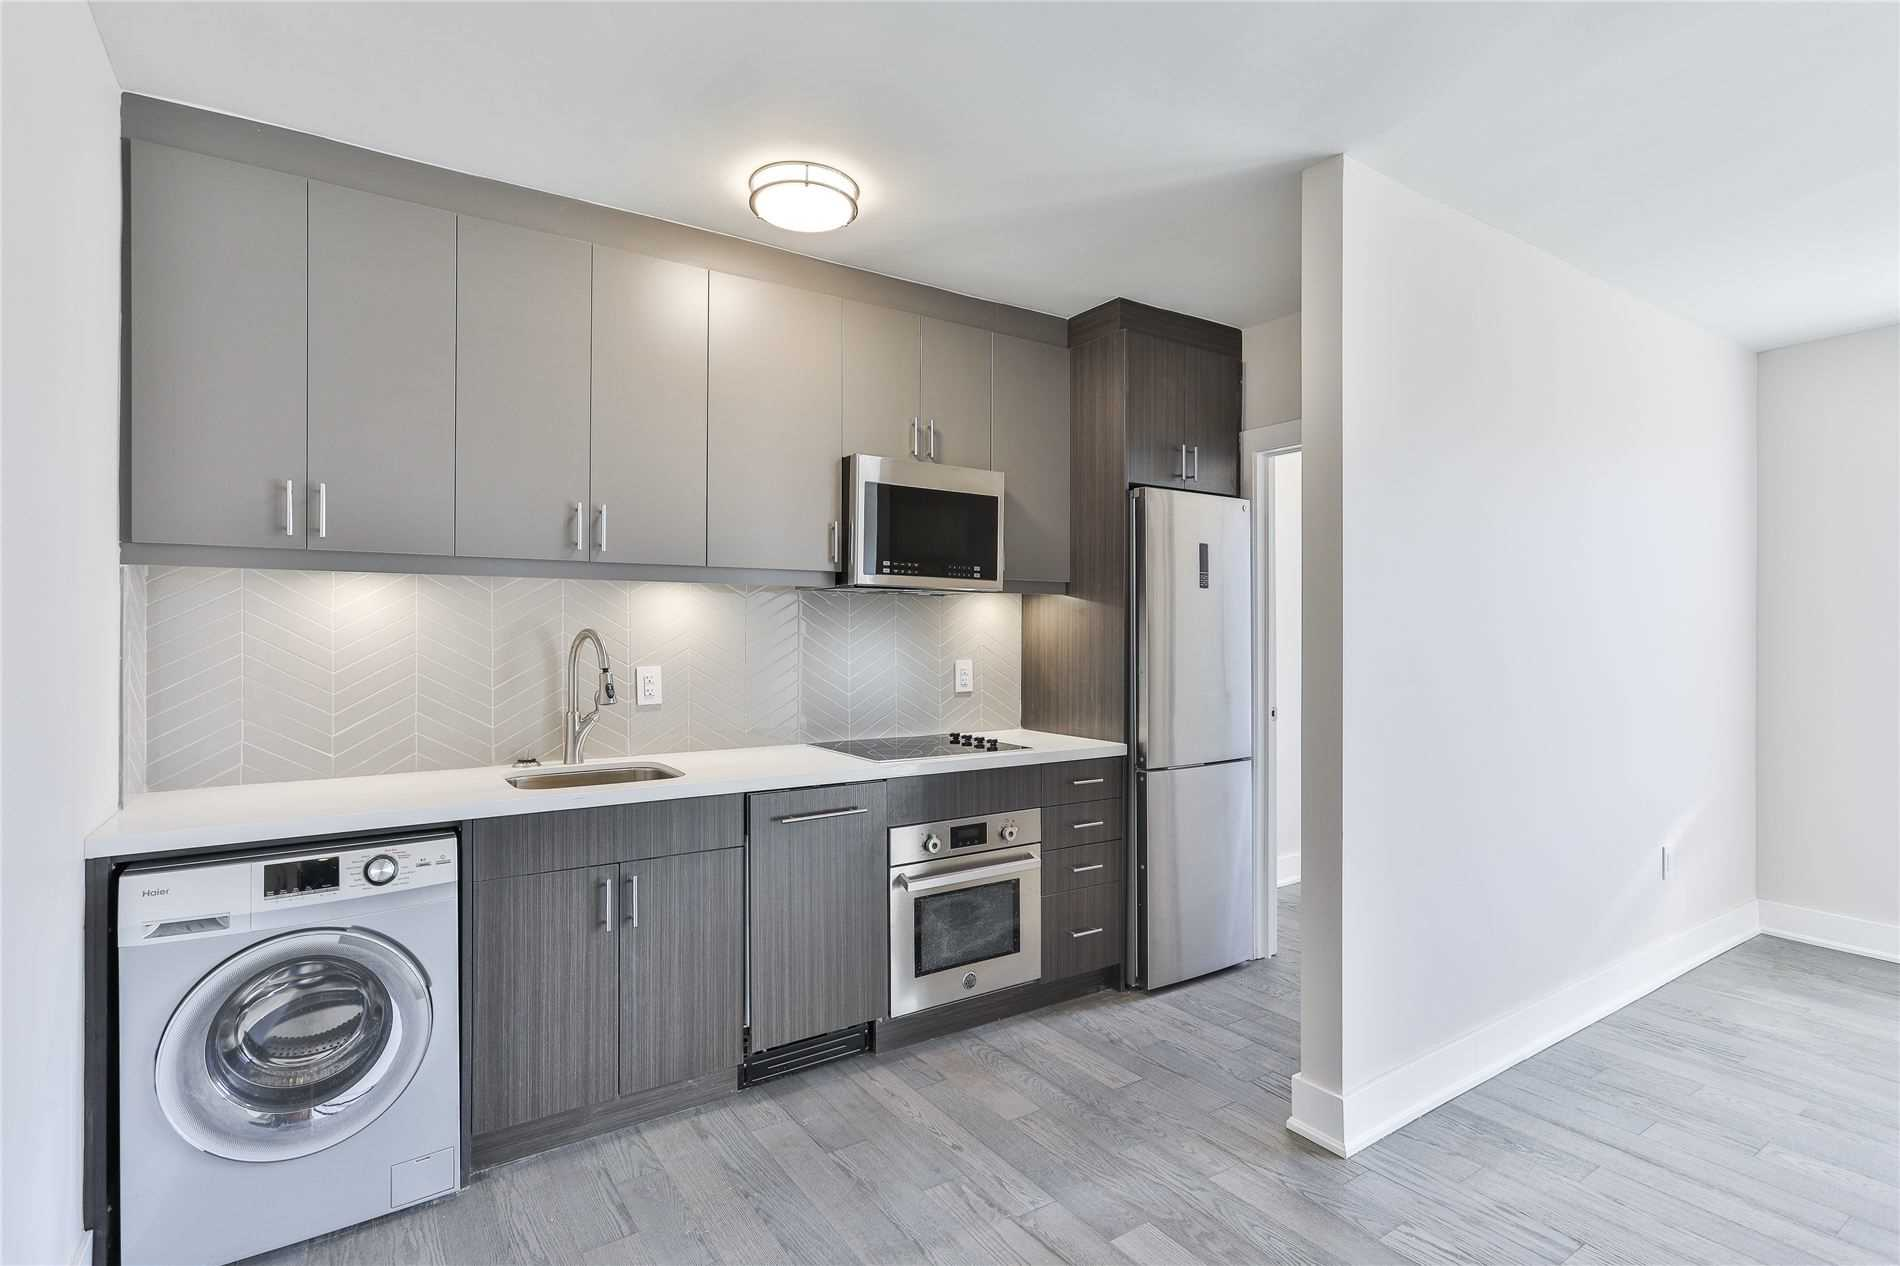 Renovated And Redesigned Two Bedroom + Den Unit In The Heart Of Spadina Village. Minutes From Shops, Restaurants And Public Transit, Combined Living And Dining Room Space Provides Spacious Area For Entertaining And Family Living. Modern Kitchen With Brand New Appliances, Including Dishwasher And Combo Washer/Dryer, Master Bedroom Includes Walk-In Closet. Den Perfect For Storage Or For A Home Office. Abundance Of Natural Light Throughout The Unit.